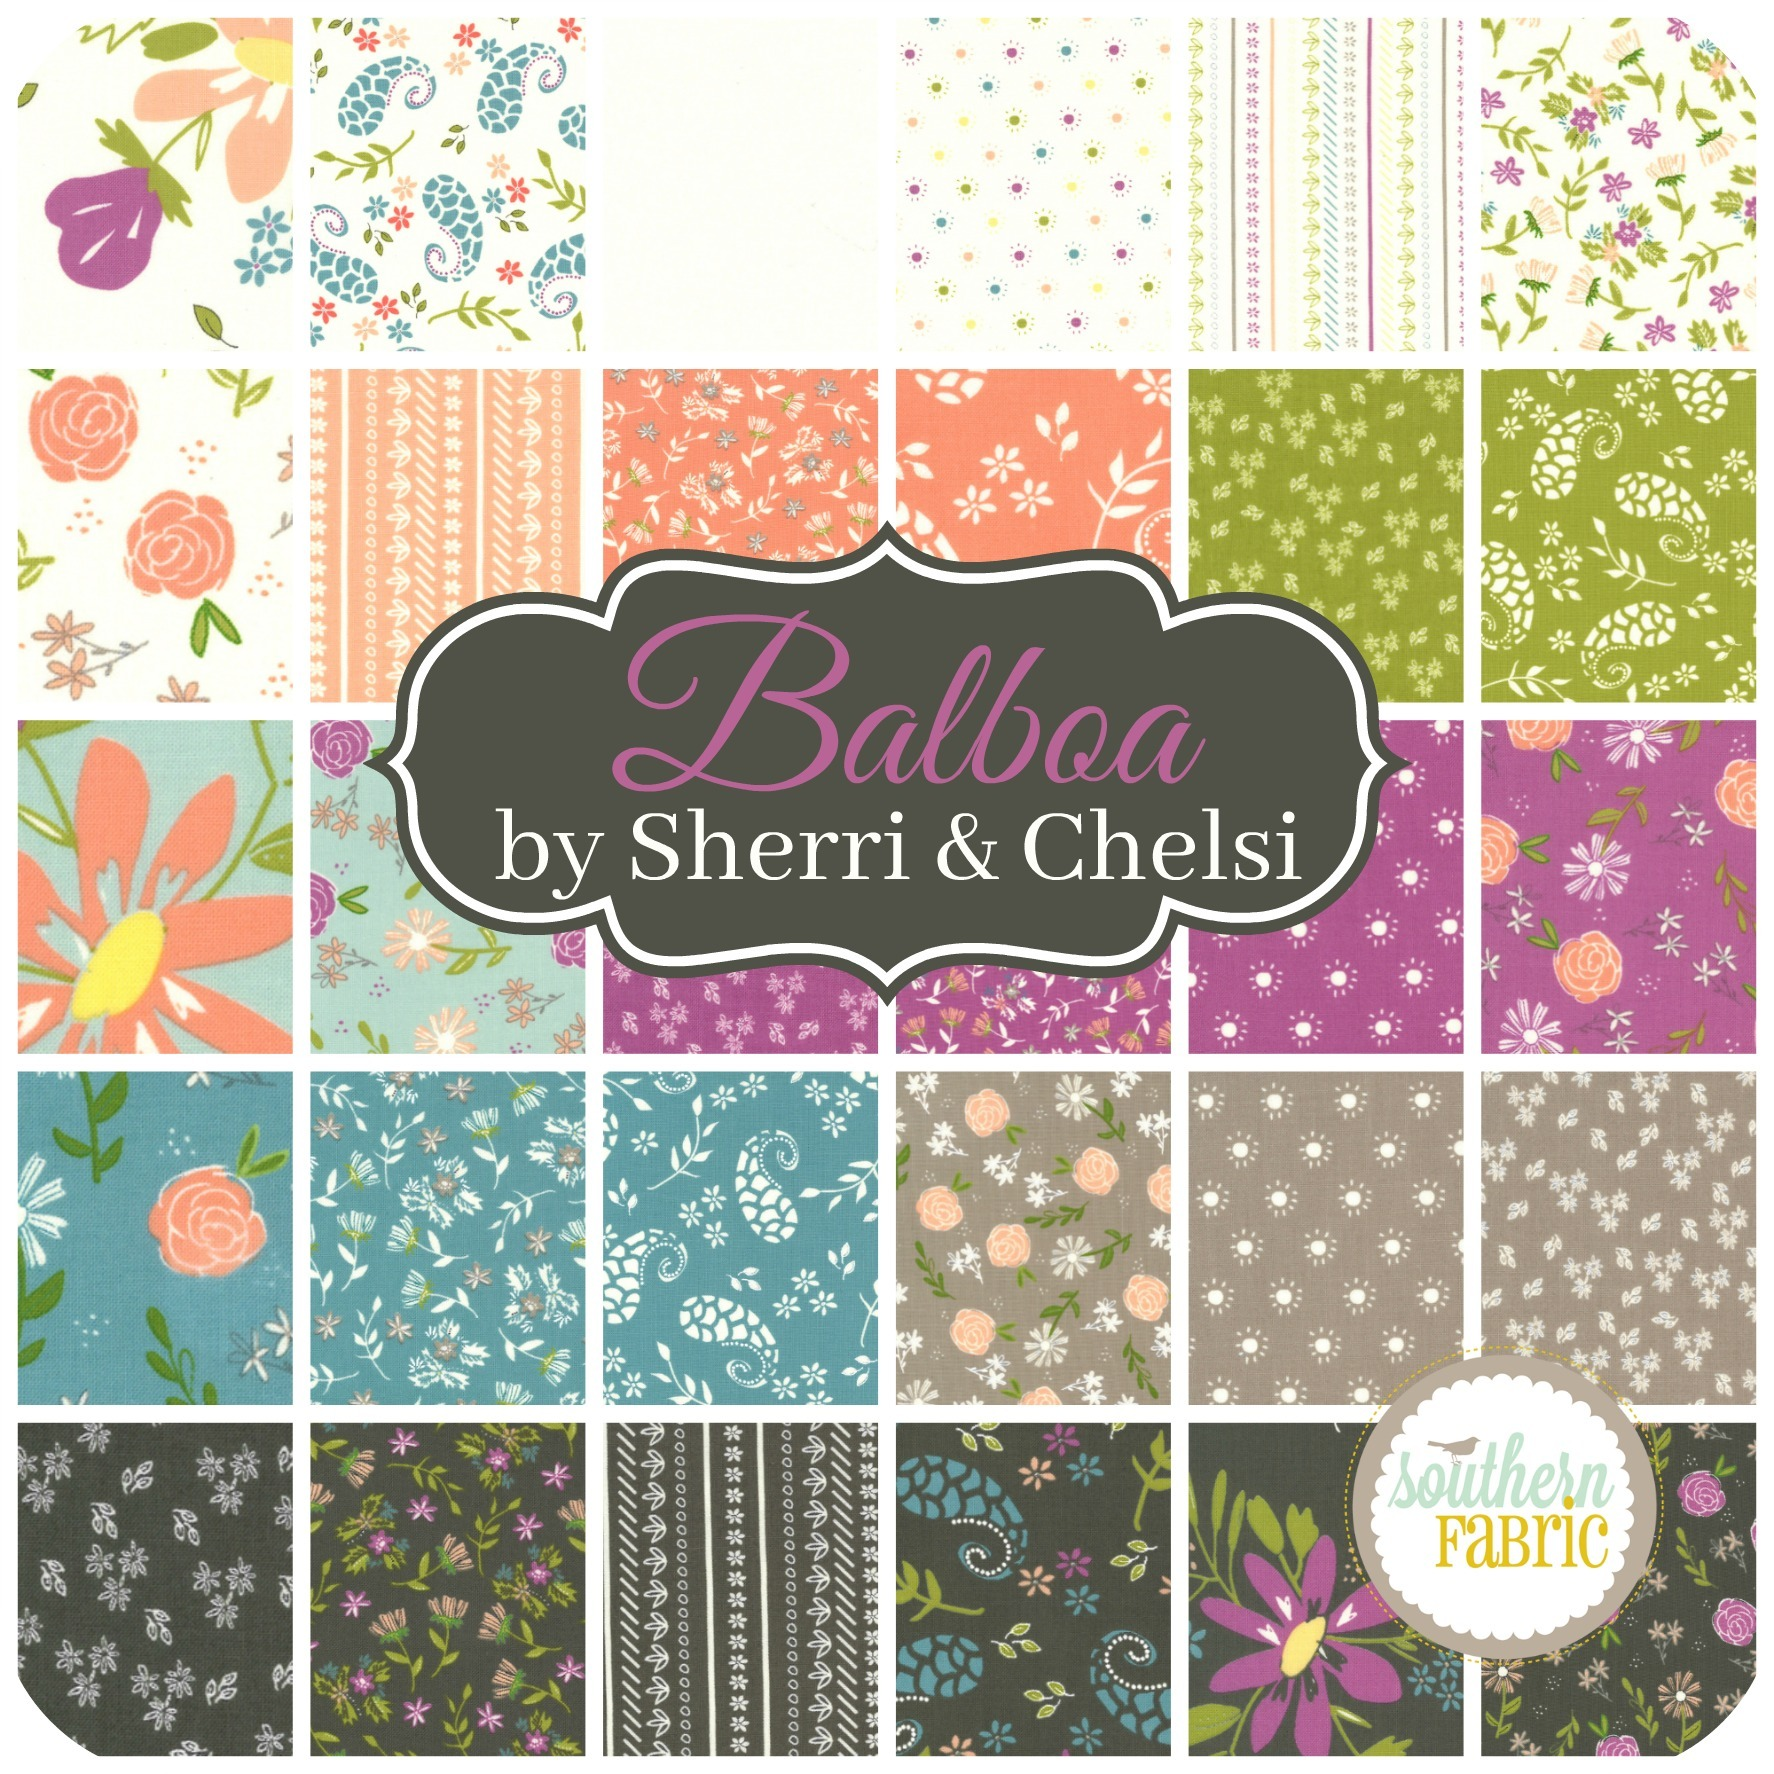 Balboa by Sherri and Chelsi